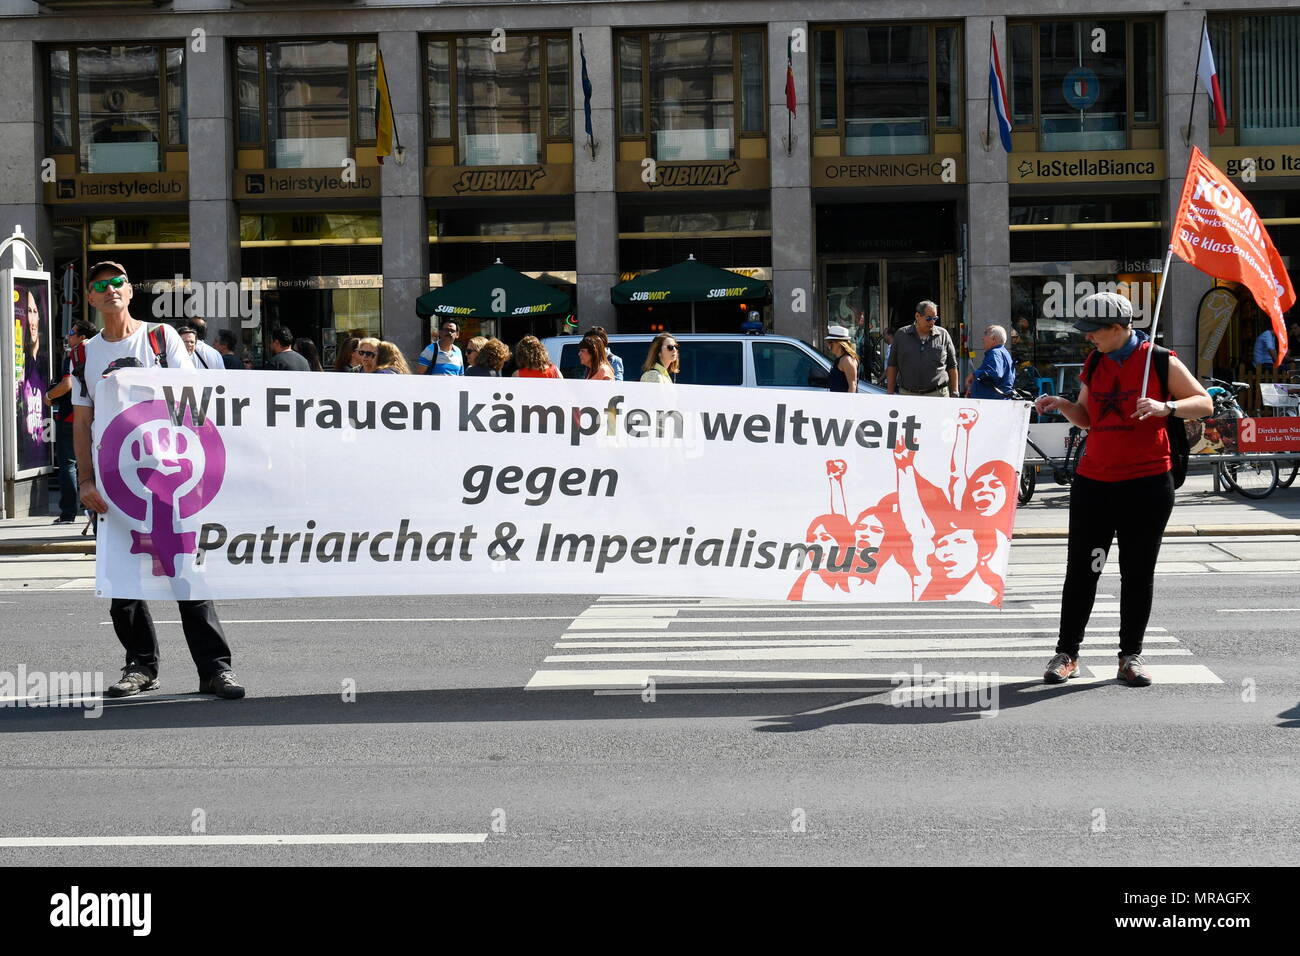 Vienna, Austria, 26th of May, 2018. A human chain for women rights and humanity in Vienna. An Austrian wide demonstration against dismantling of the welfare state, warmongering and the right-wing politics of division and exclusion organised by Plattform 20000 frauen(twenty  thousand women). Picture shows a banner with the inscription 'We women fight worldwide against patriarchy and imperialism'. Credit: Franz Perc / Alamy Live News - Stock Image